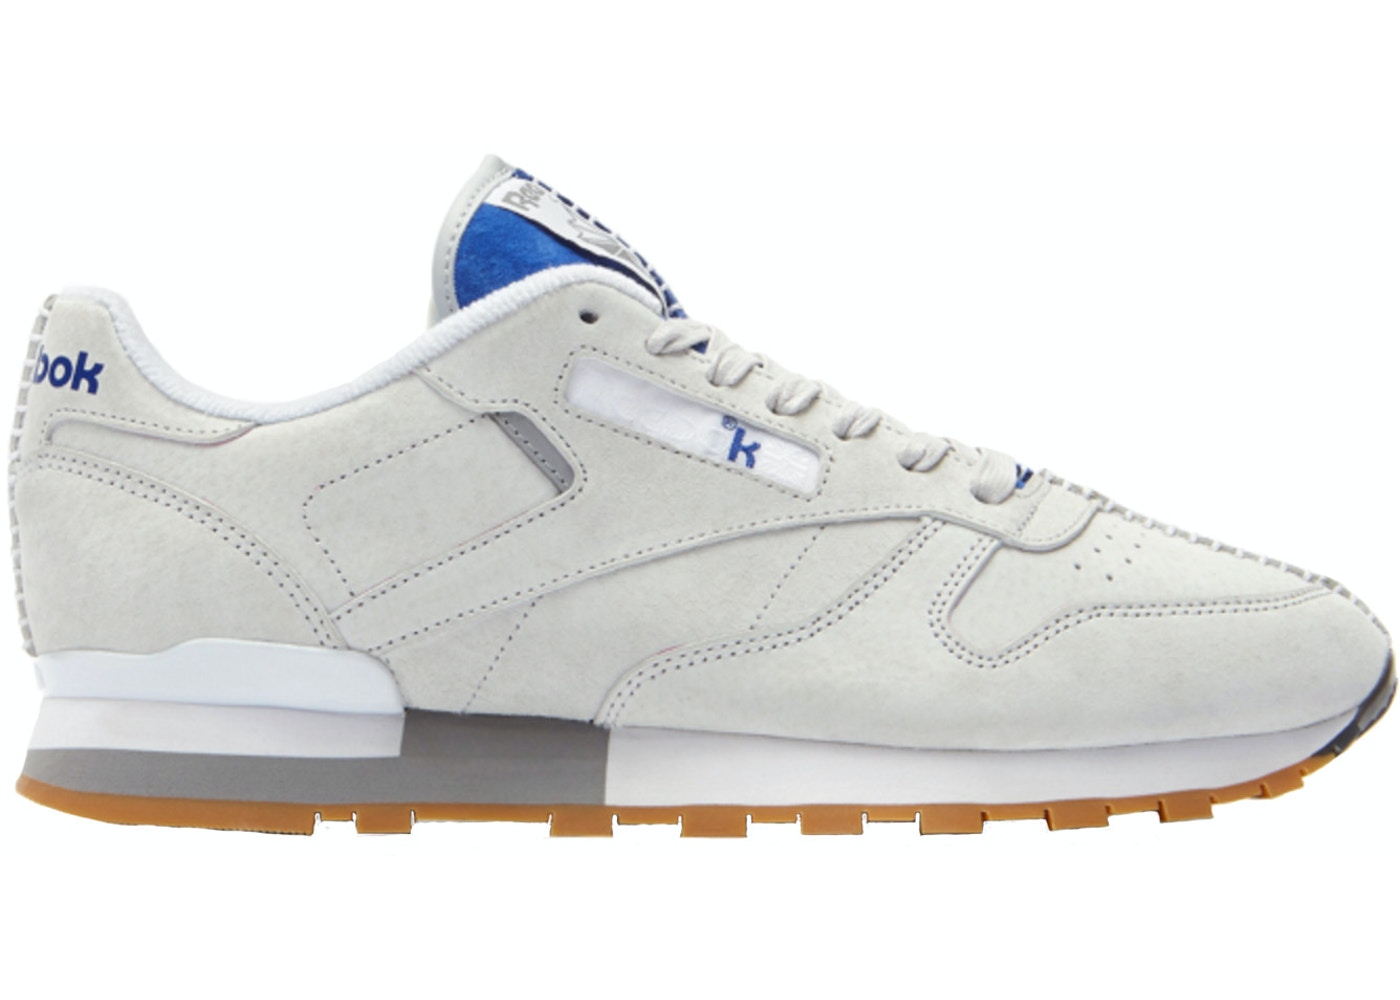 online store efb7c a794c Reebok Classic Leather Kendrick Lamar Deconstructed - BD4185